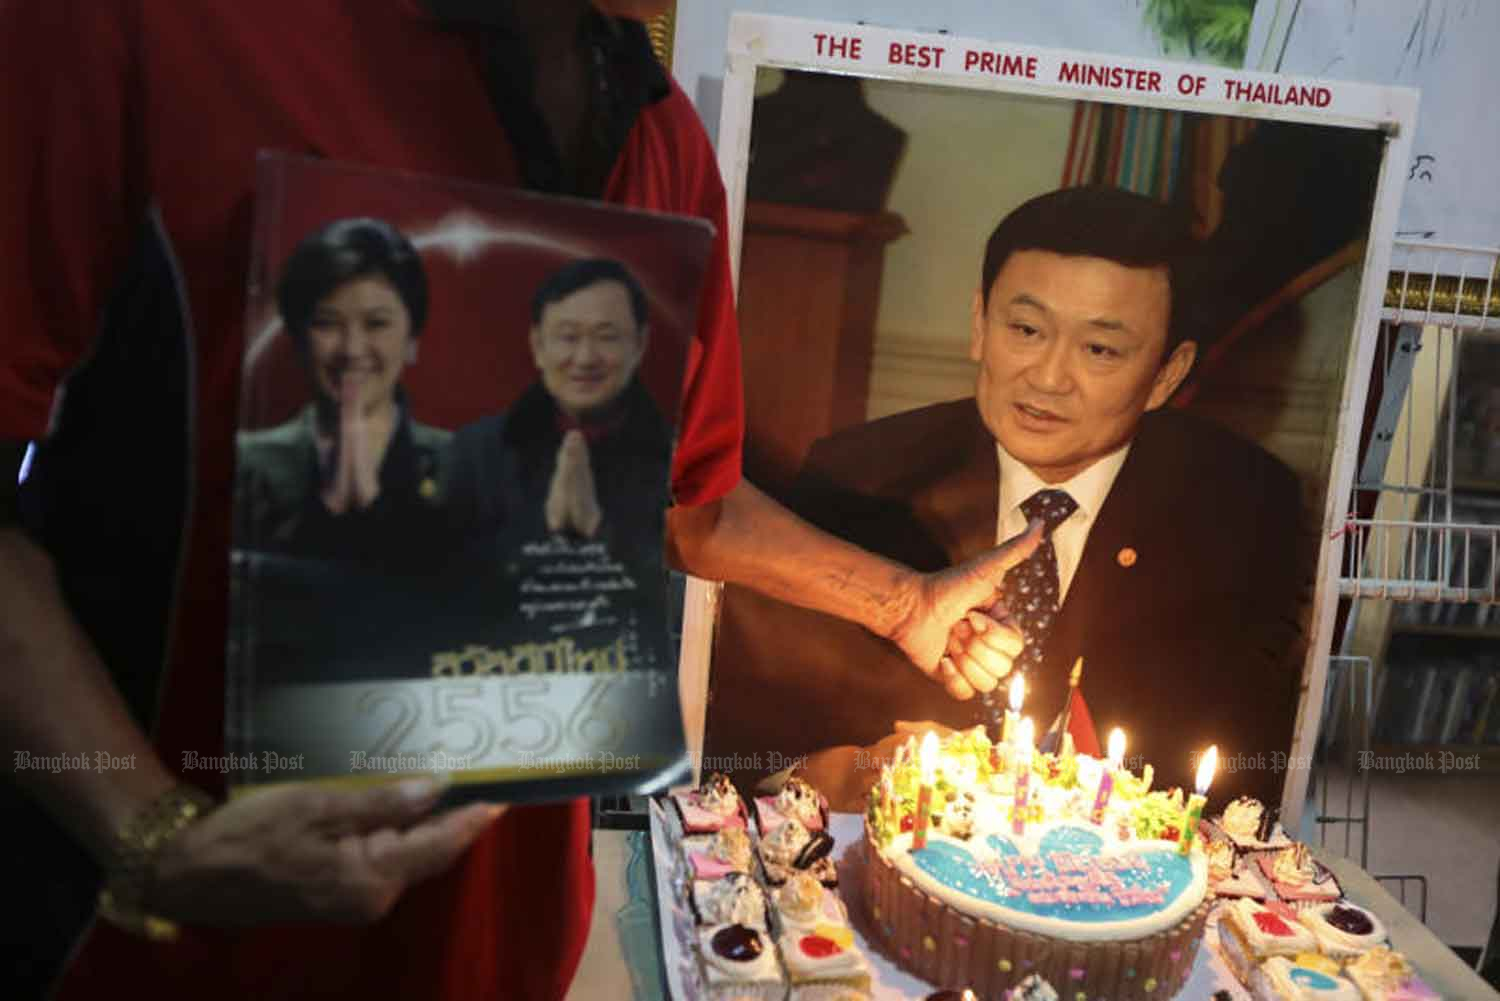 Red-shirt United Front for Democracy against Dictatorship supporters hold a birthday party for ousted prime minister Thaksin Shinawtra at a bookshop at Imperial World shopping mall in Lat Phrao in 2016. (Bangkok Post file photo)